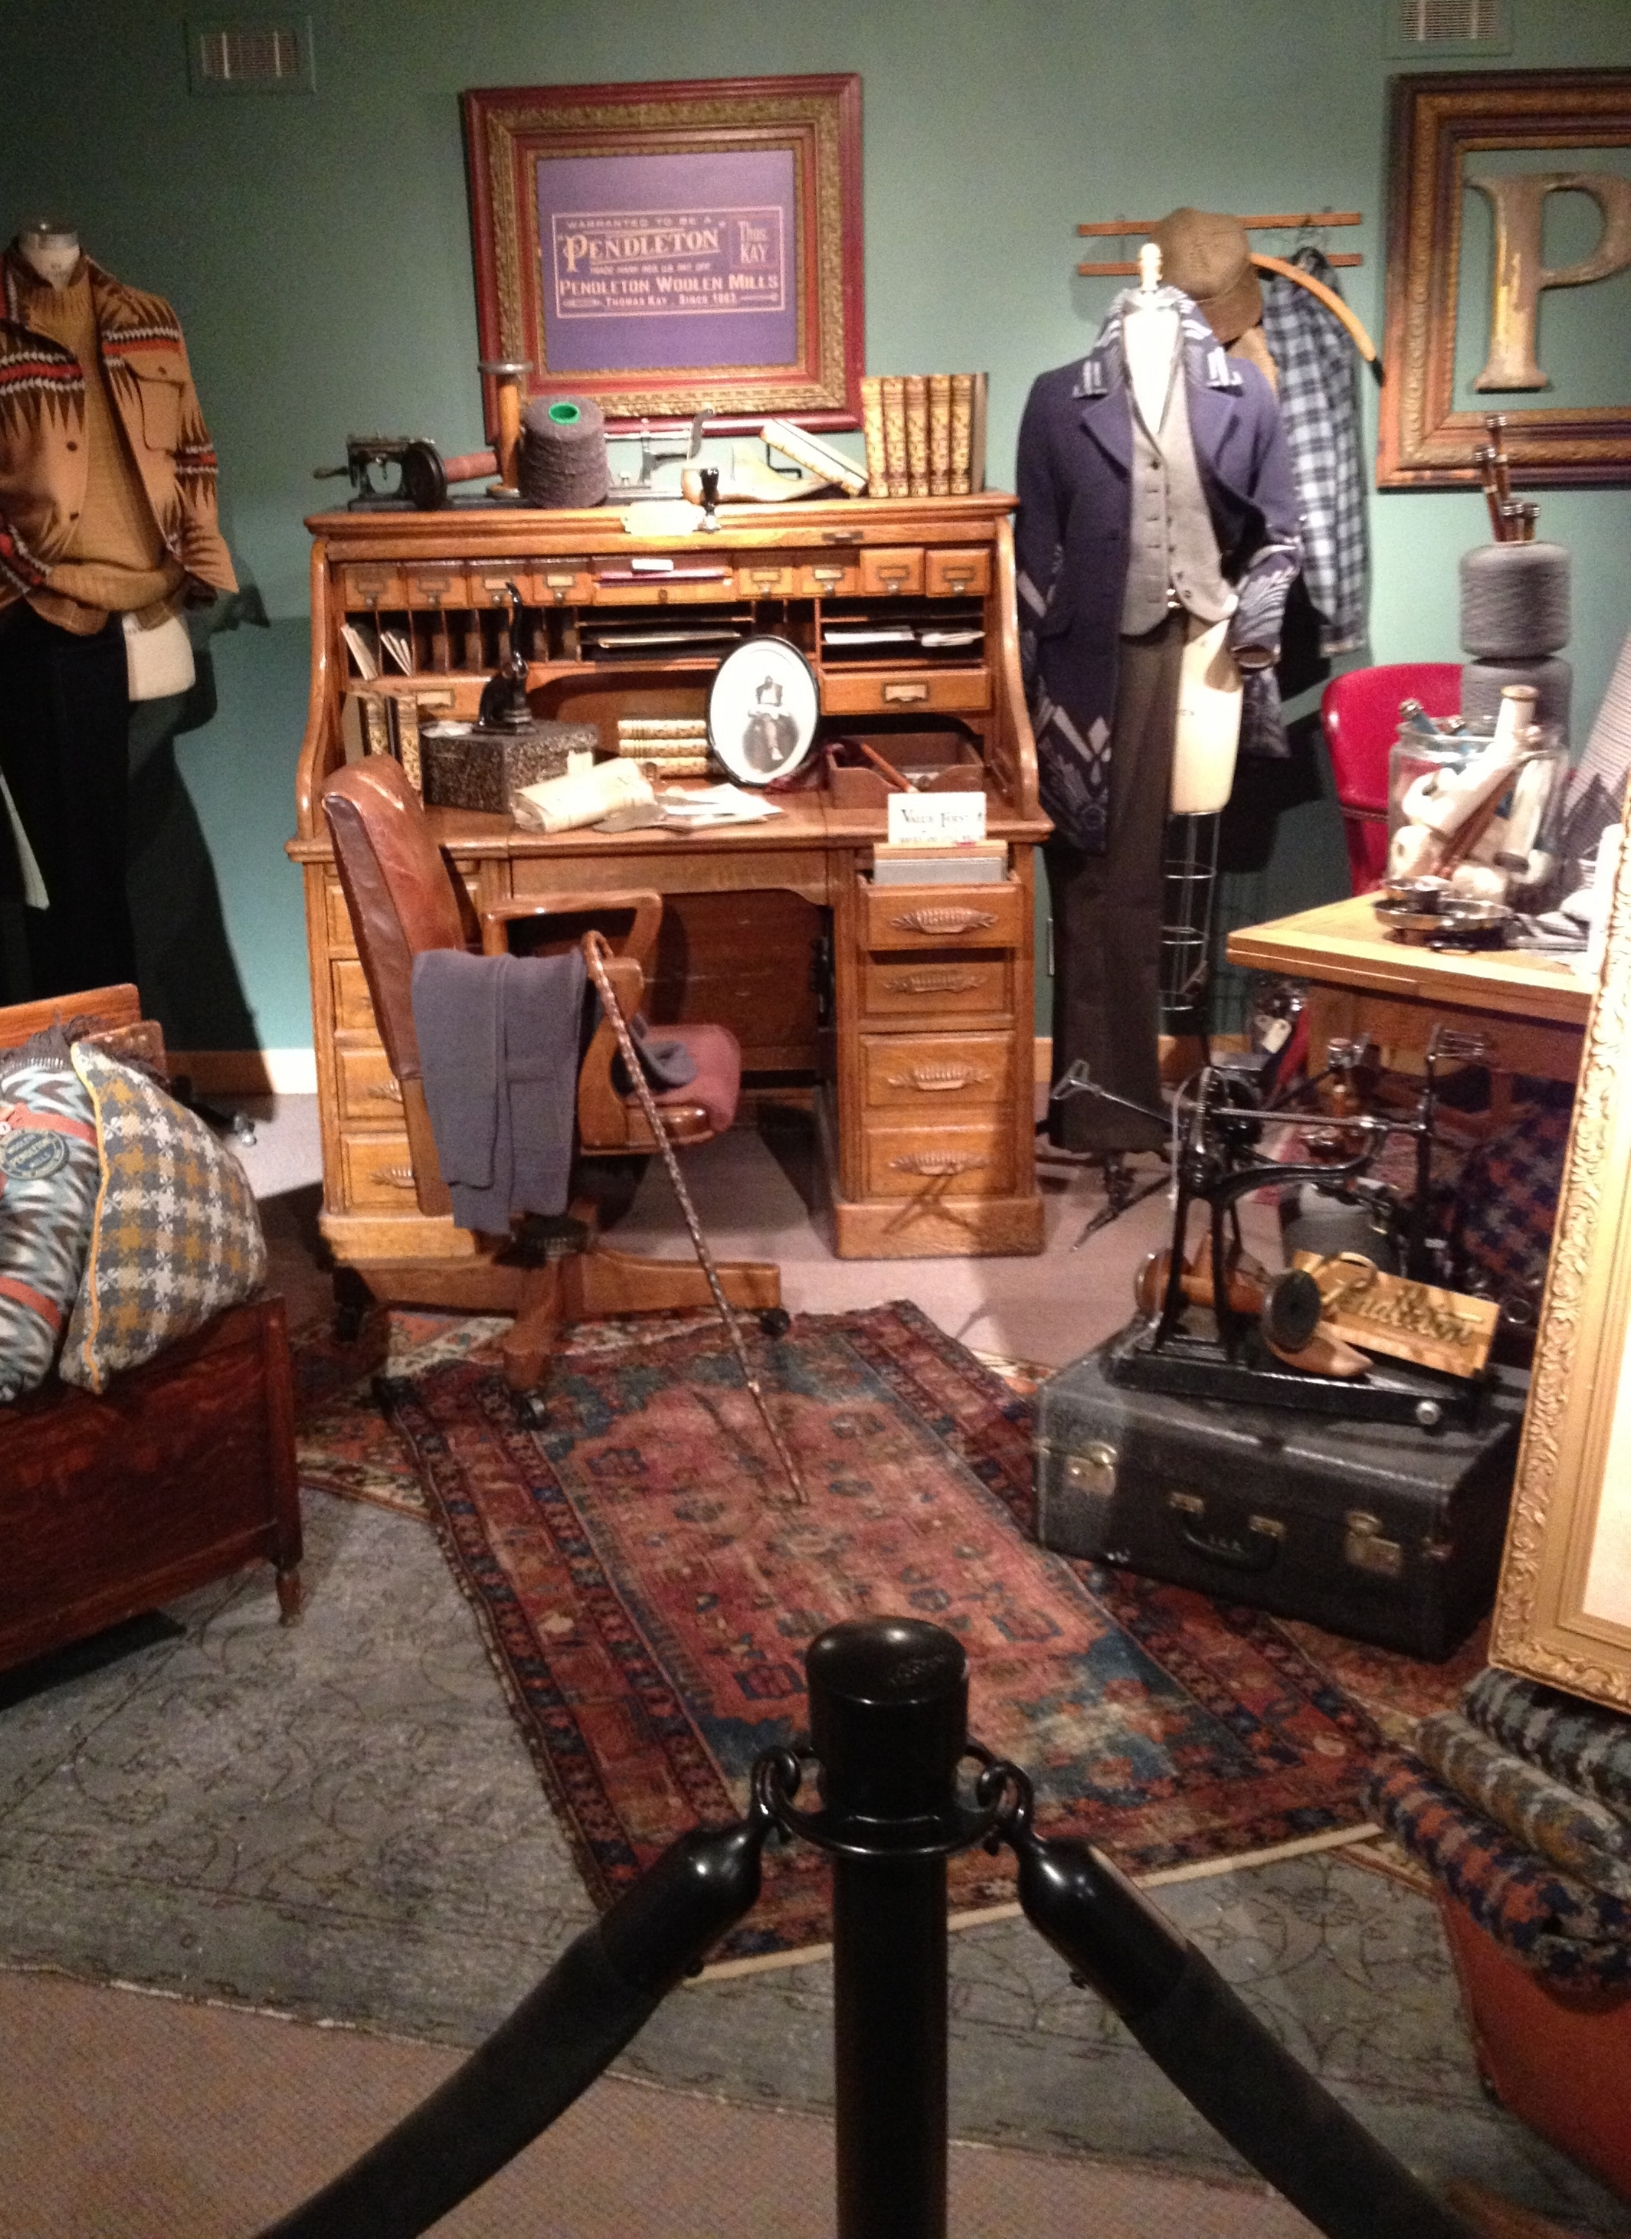 THE ESSENCE OF A ONCE BUSINESS OWNER/CLOTHING DESIGNER'S OFFICE BROUGHT TO LIFE